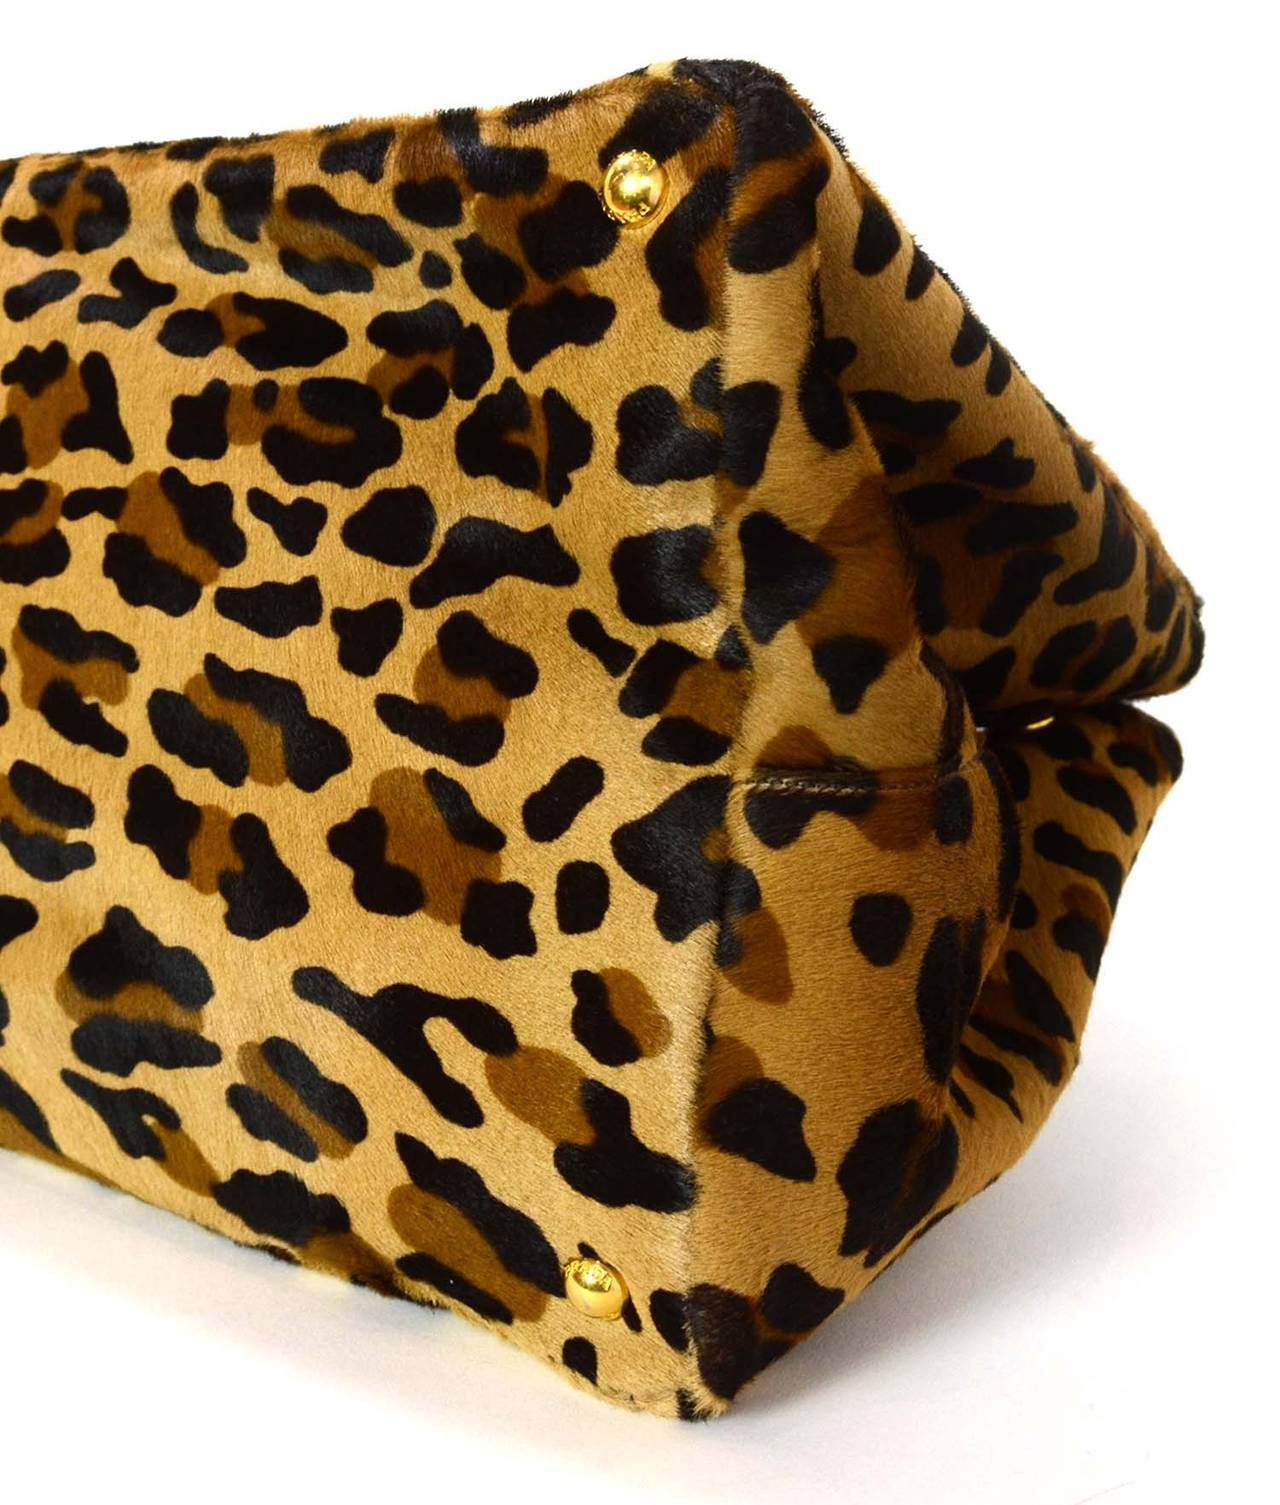 prada wallets for sale - PRADA Brown and Black Leopard Print Pony Hair Tote Bag at 1stdibs